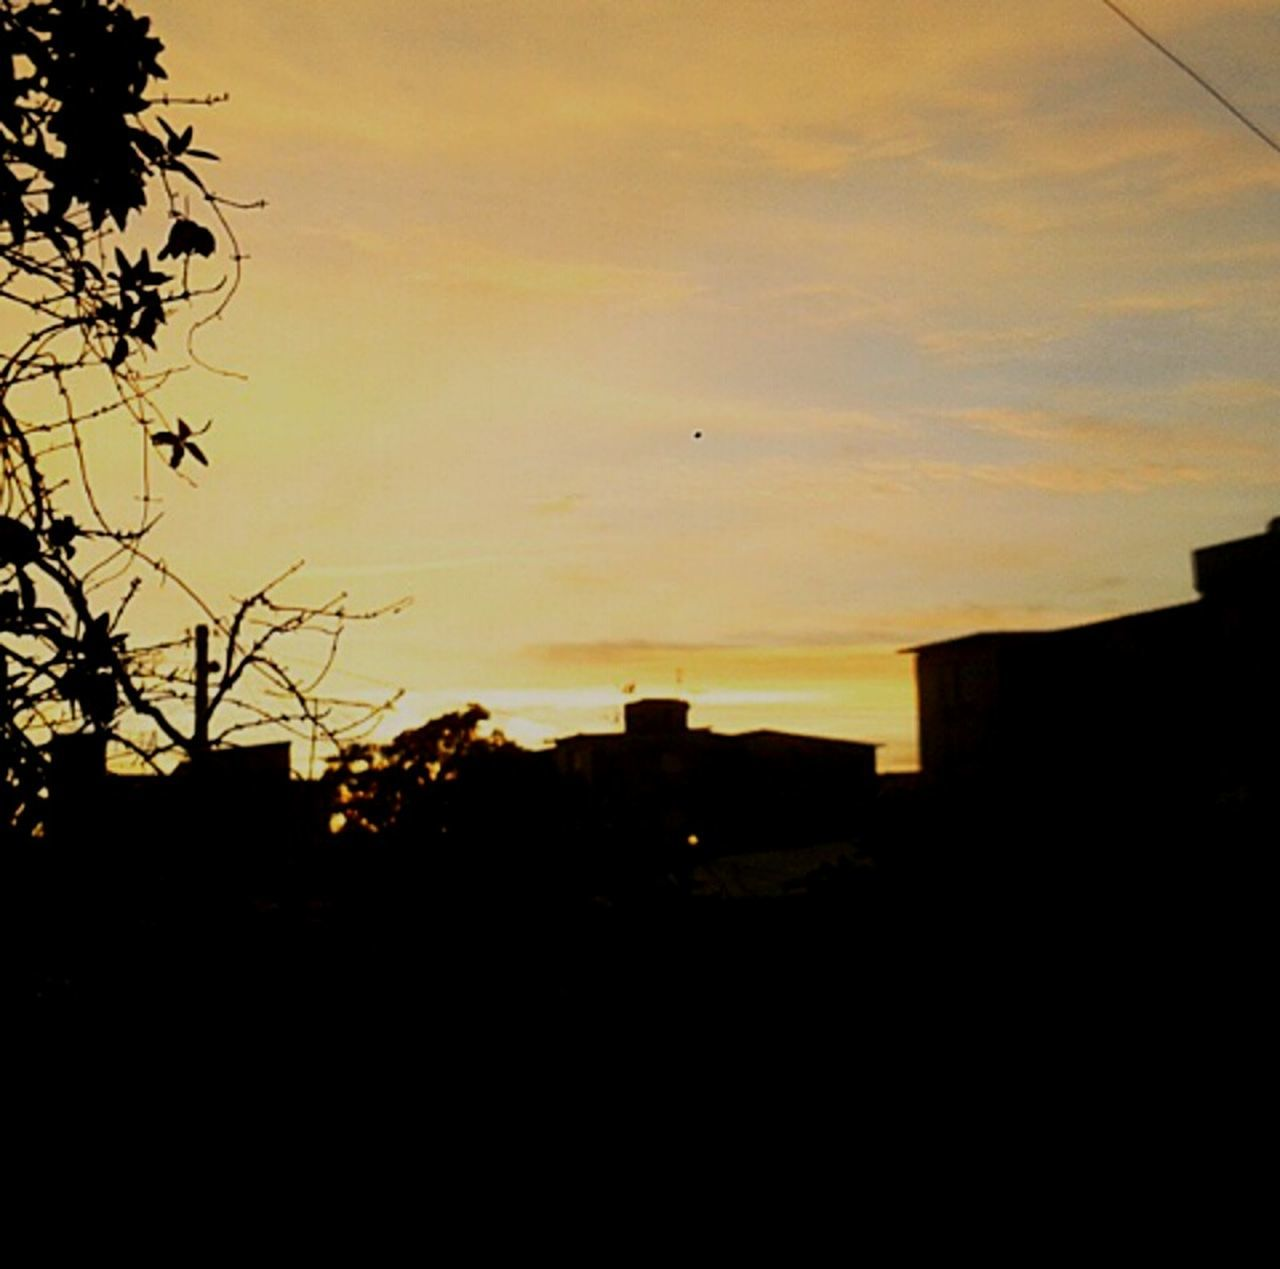 silhouette, sunset, no people, bird, flying, sky, nature, tree, architecture, building exterior, outdoors, beauty in nature